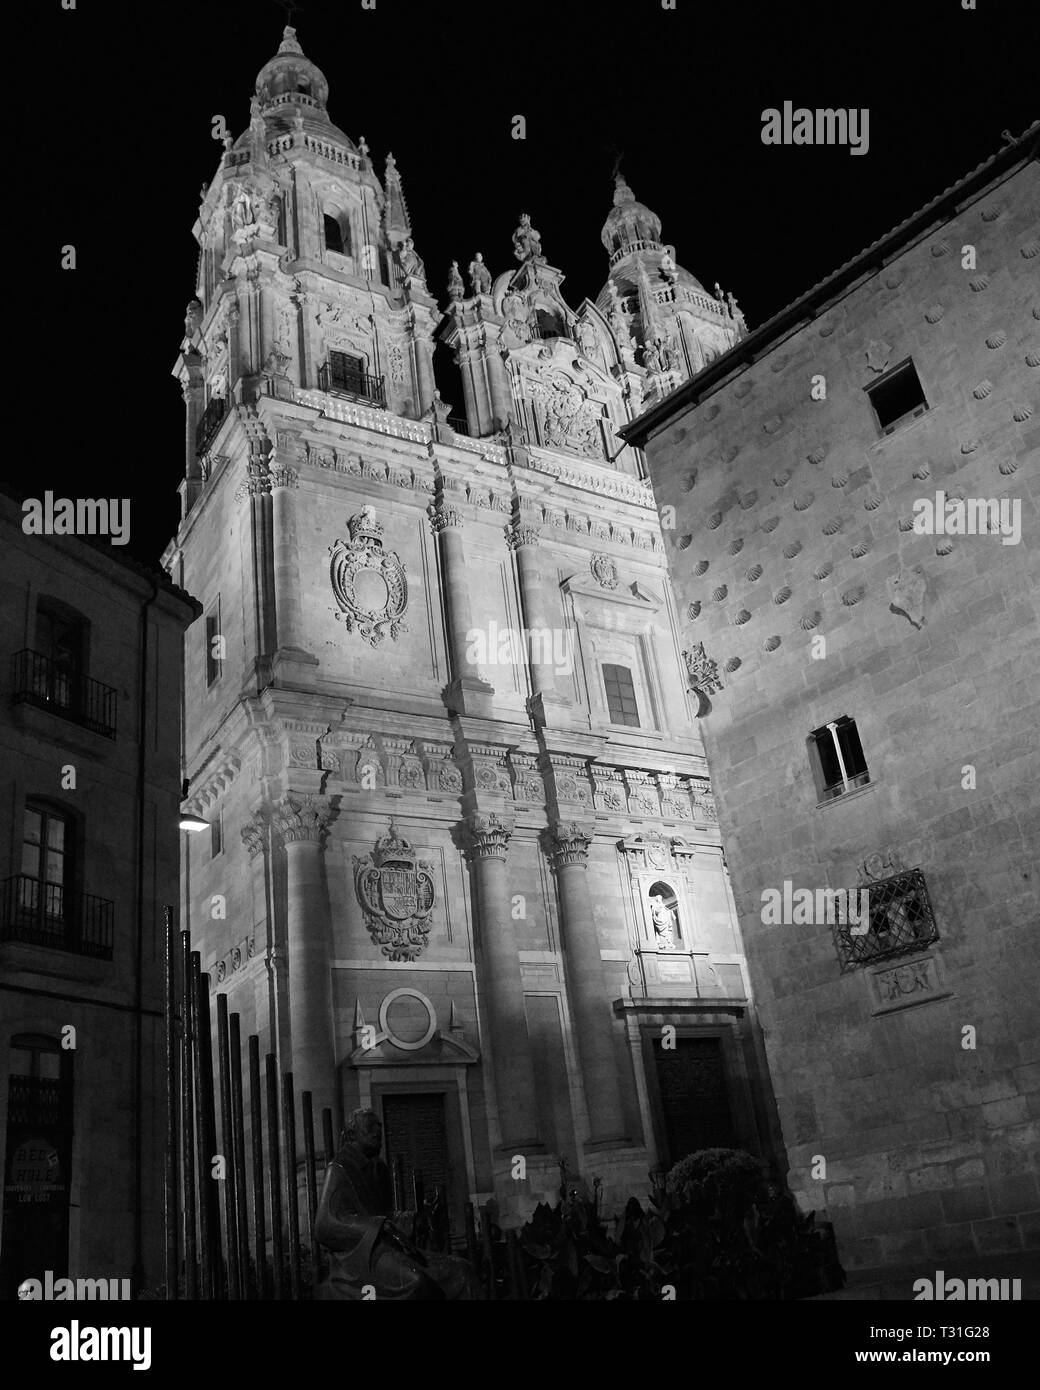 A night shot of Universidad de Salamanca delivered in monochrome to enhance the beauty in its 1130 architecture - Stock Image